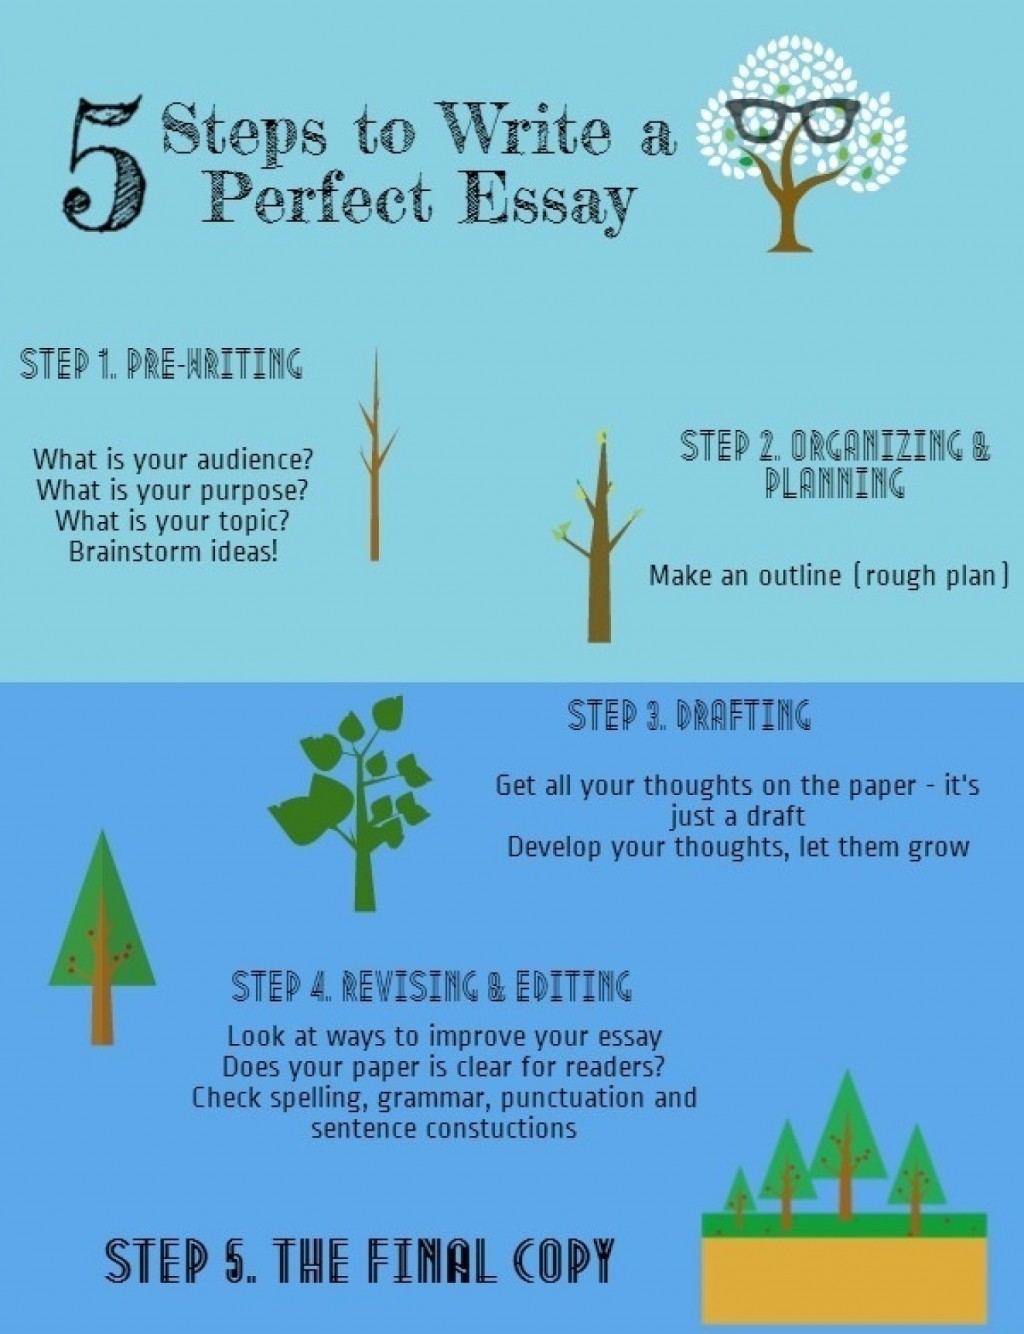 003 Steps To Write An Essay Perfect 547da311ad70a W1500 Staggering In Telugu Mla Format Pdf Large